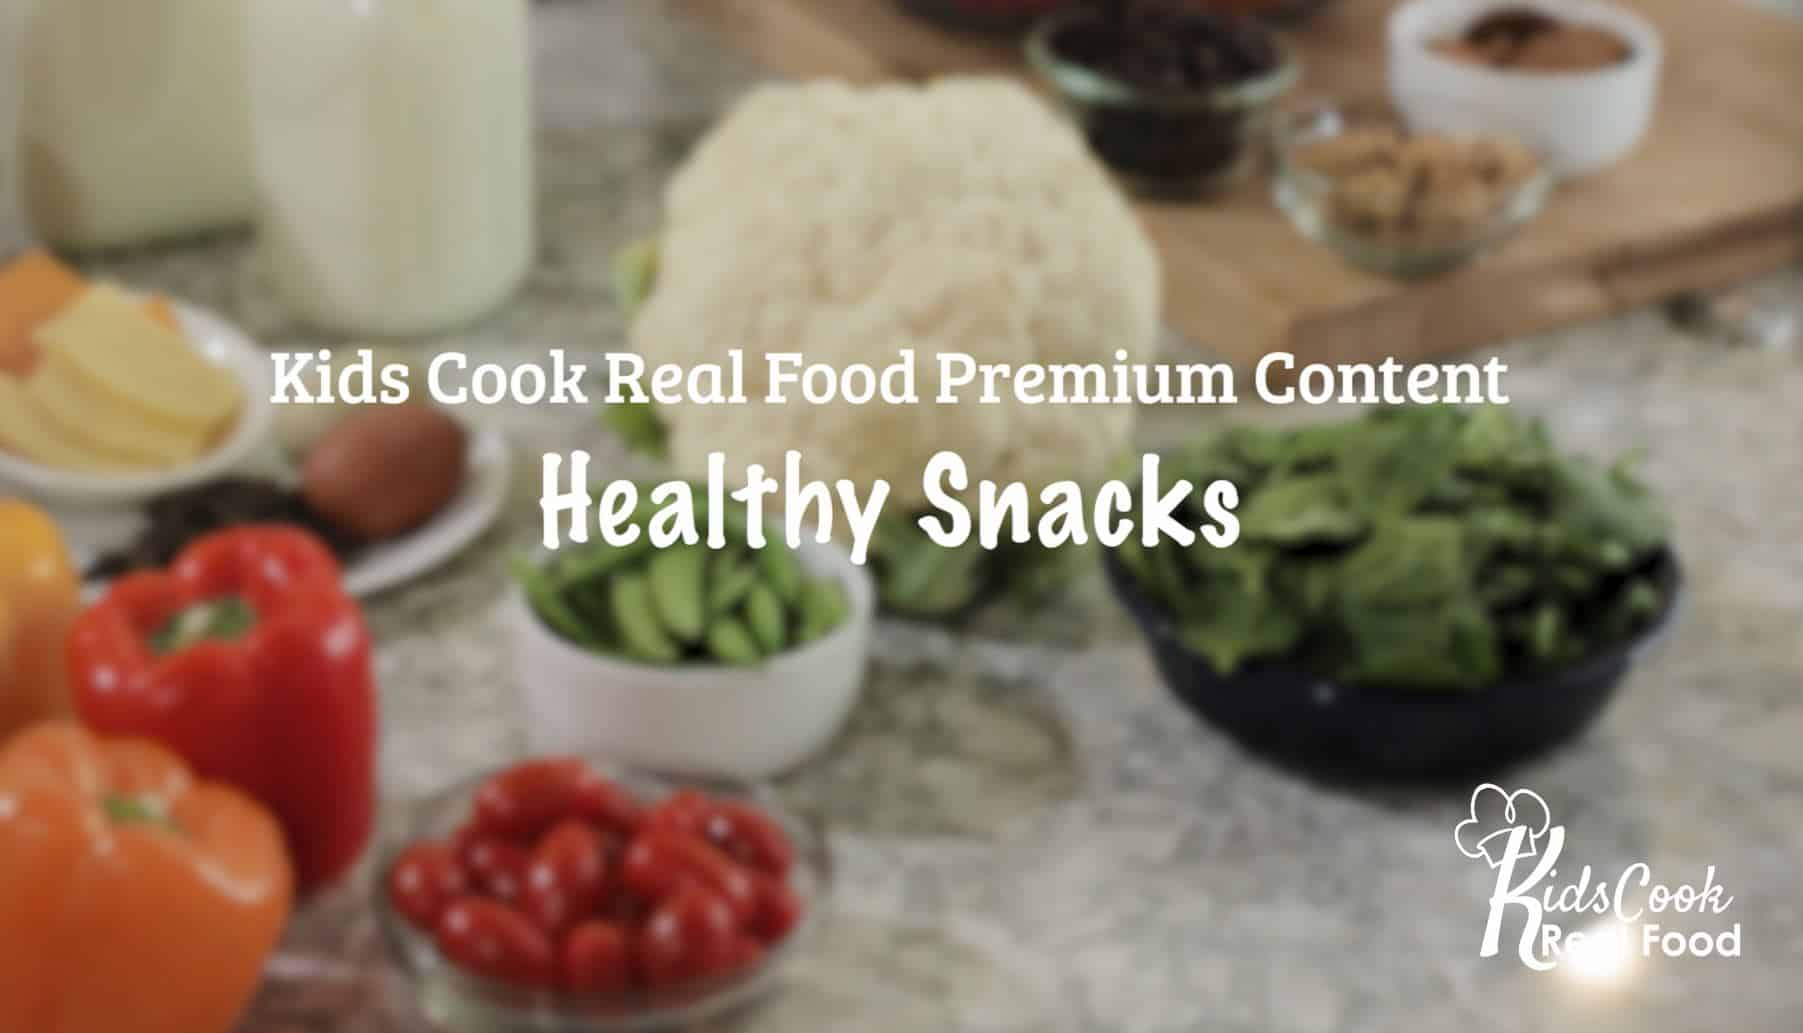 Kids can Make Healthy Snacks Video Lessons